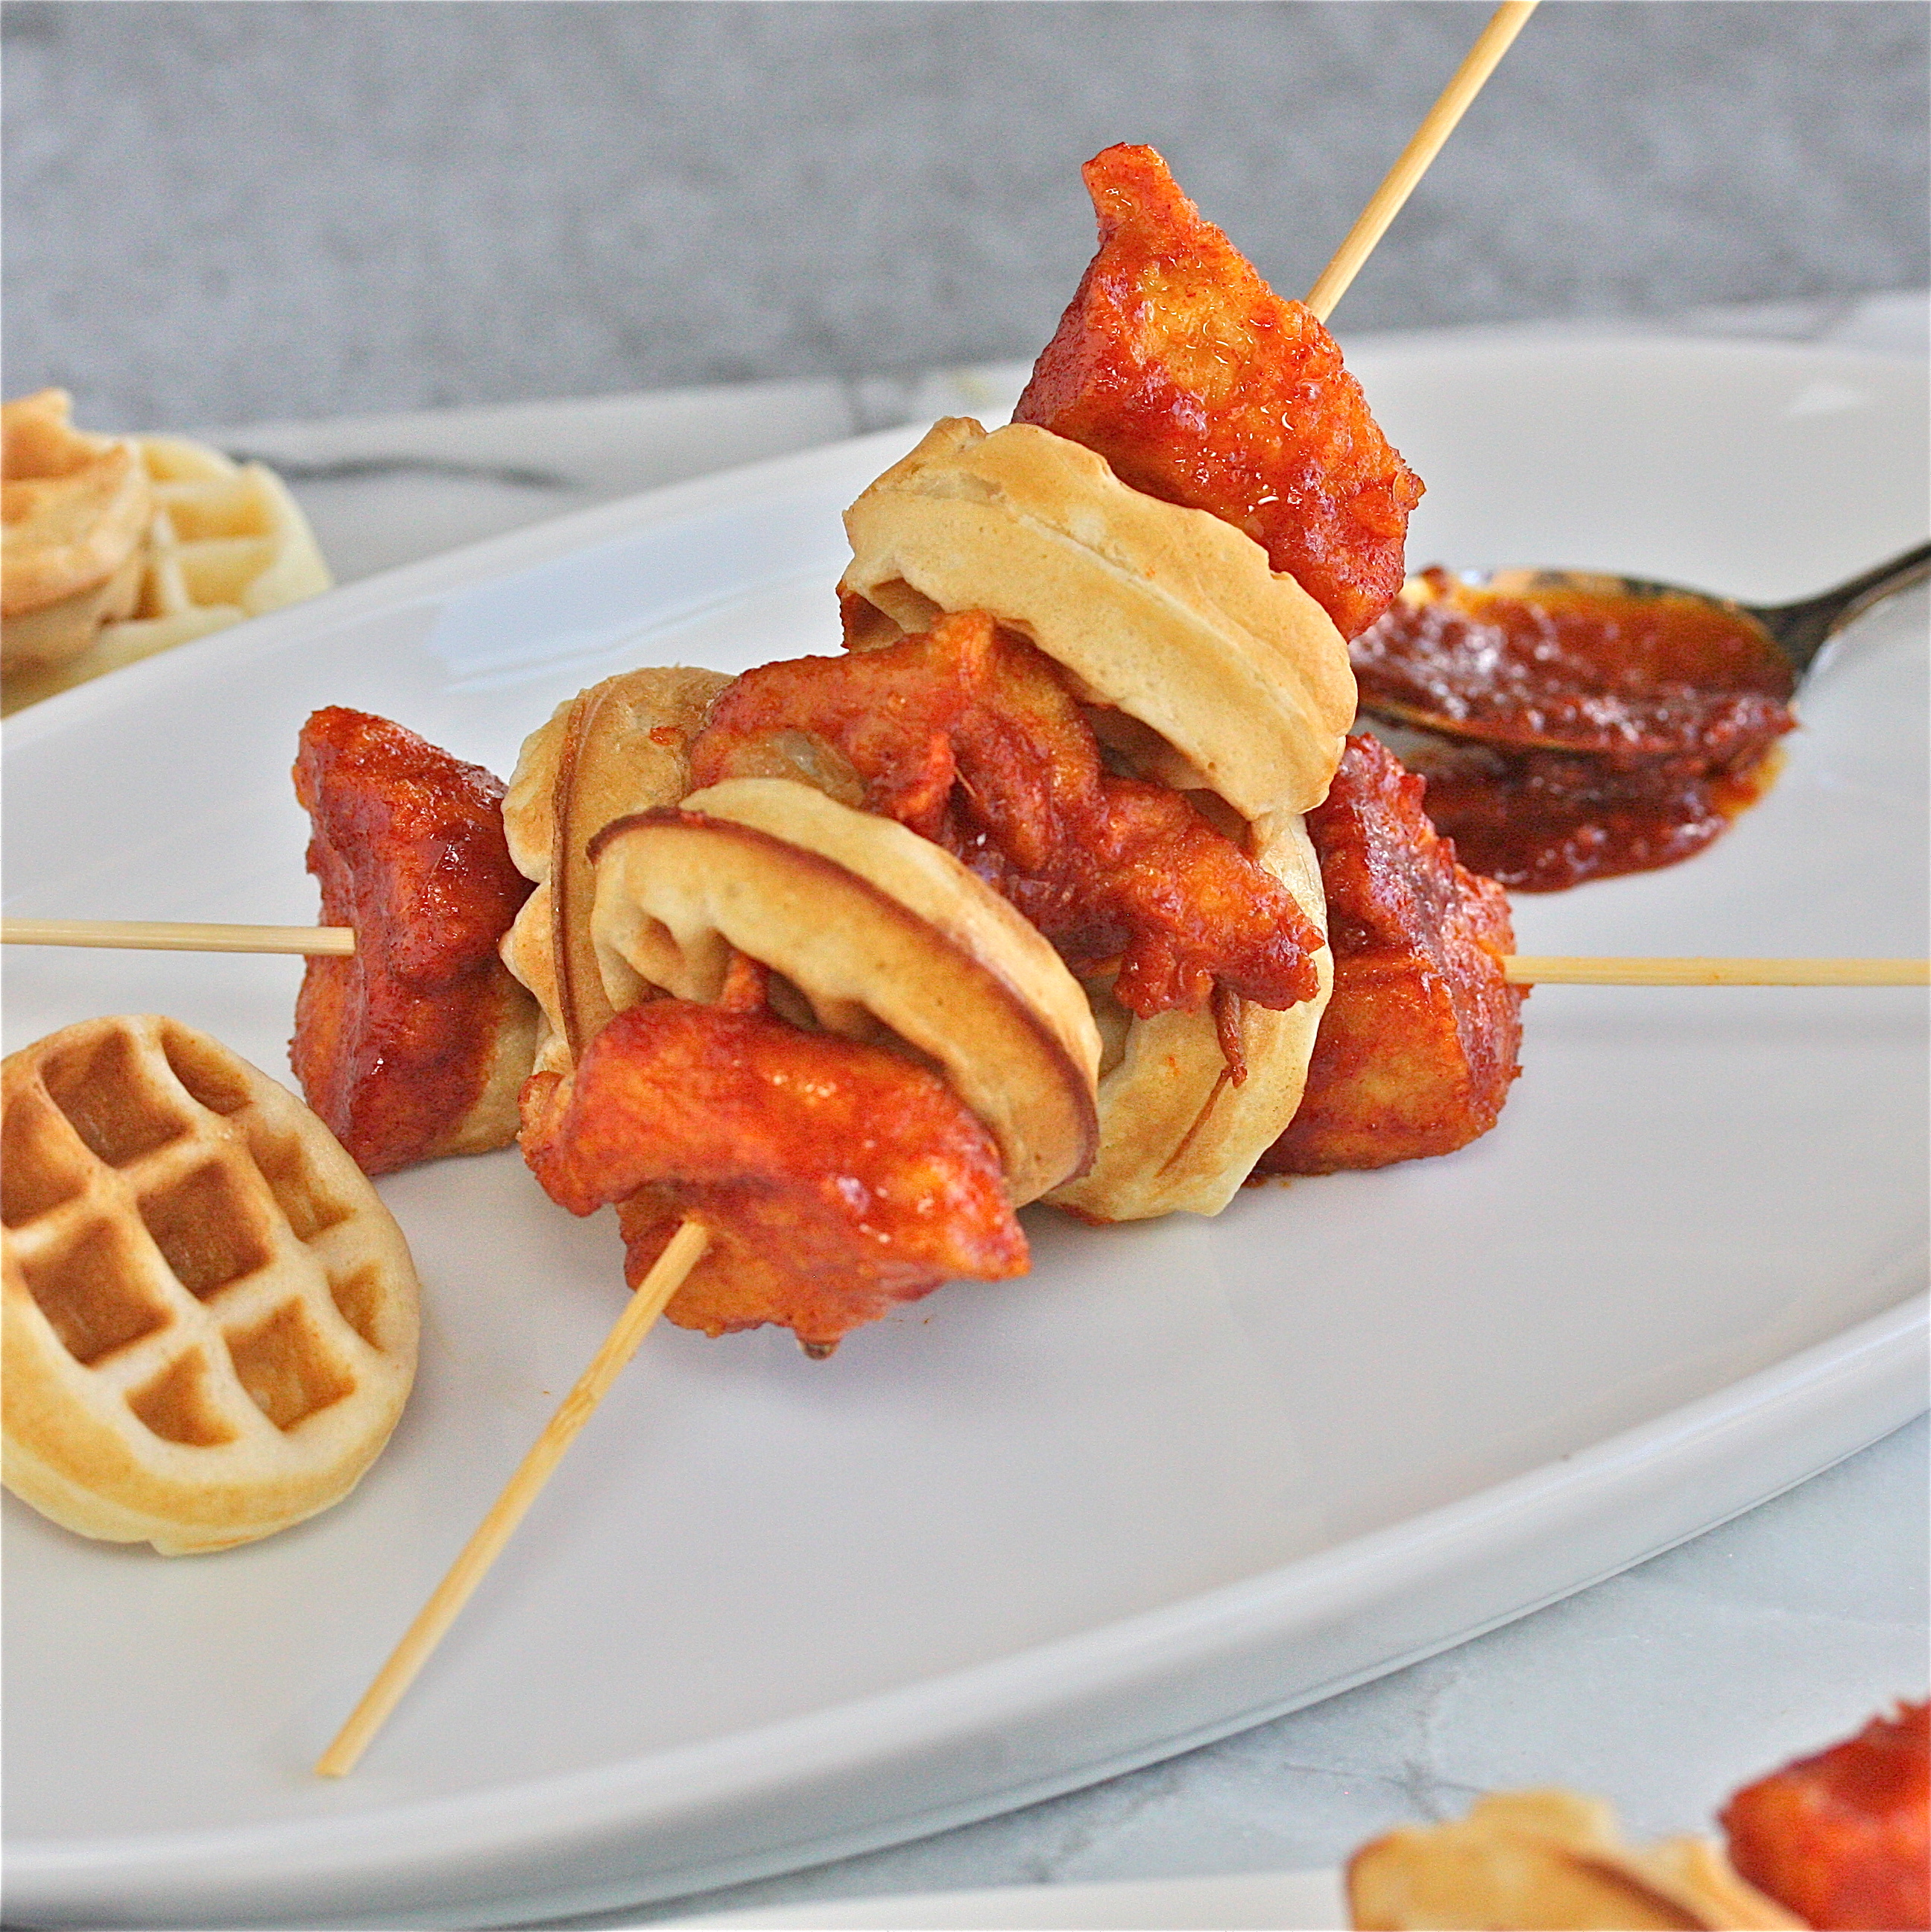 Diy Finger Foods: Food Truck Frenzy: Korean Fried Chicken And Waffle Skewers